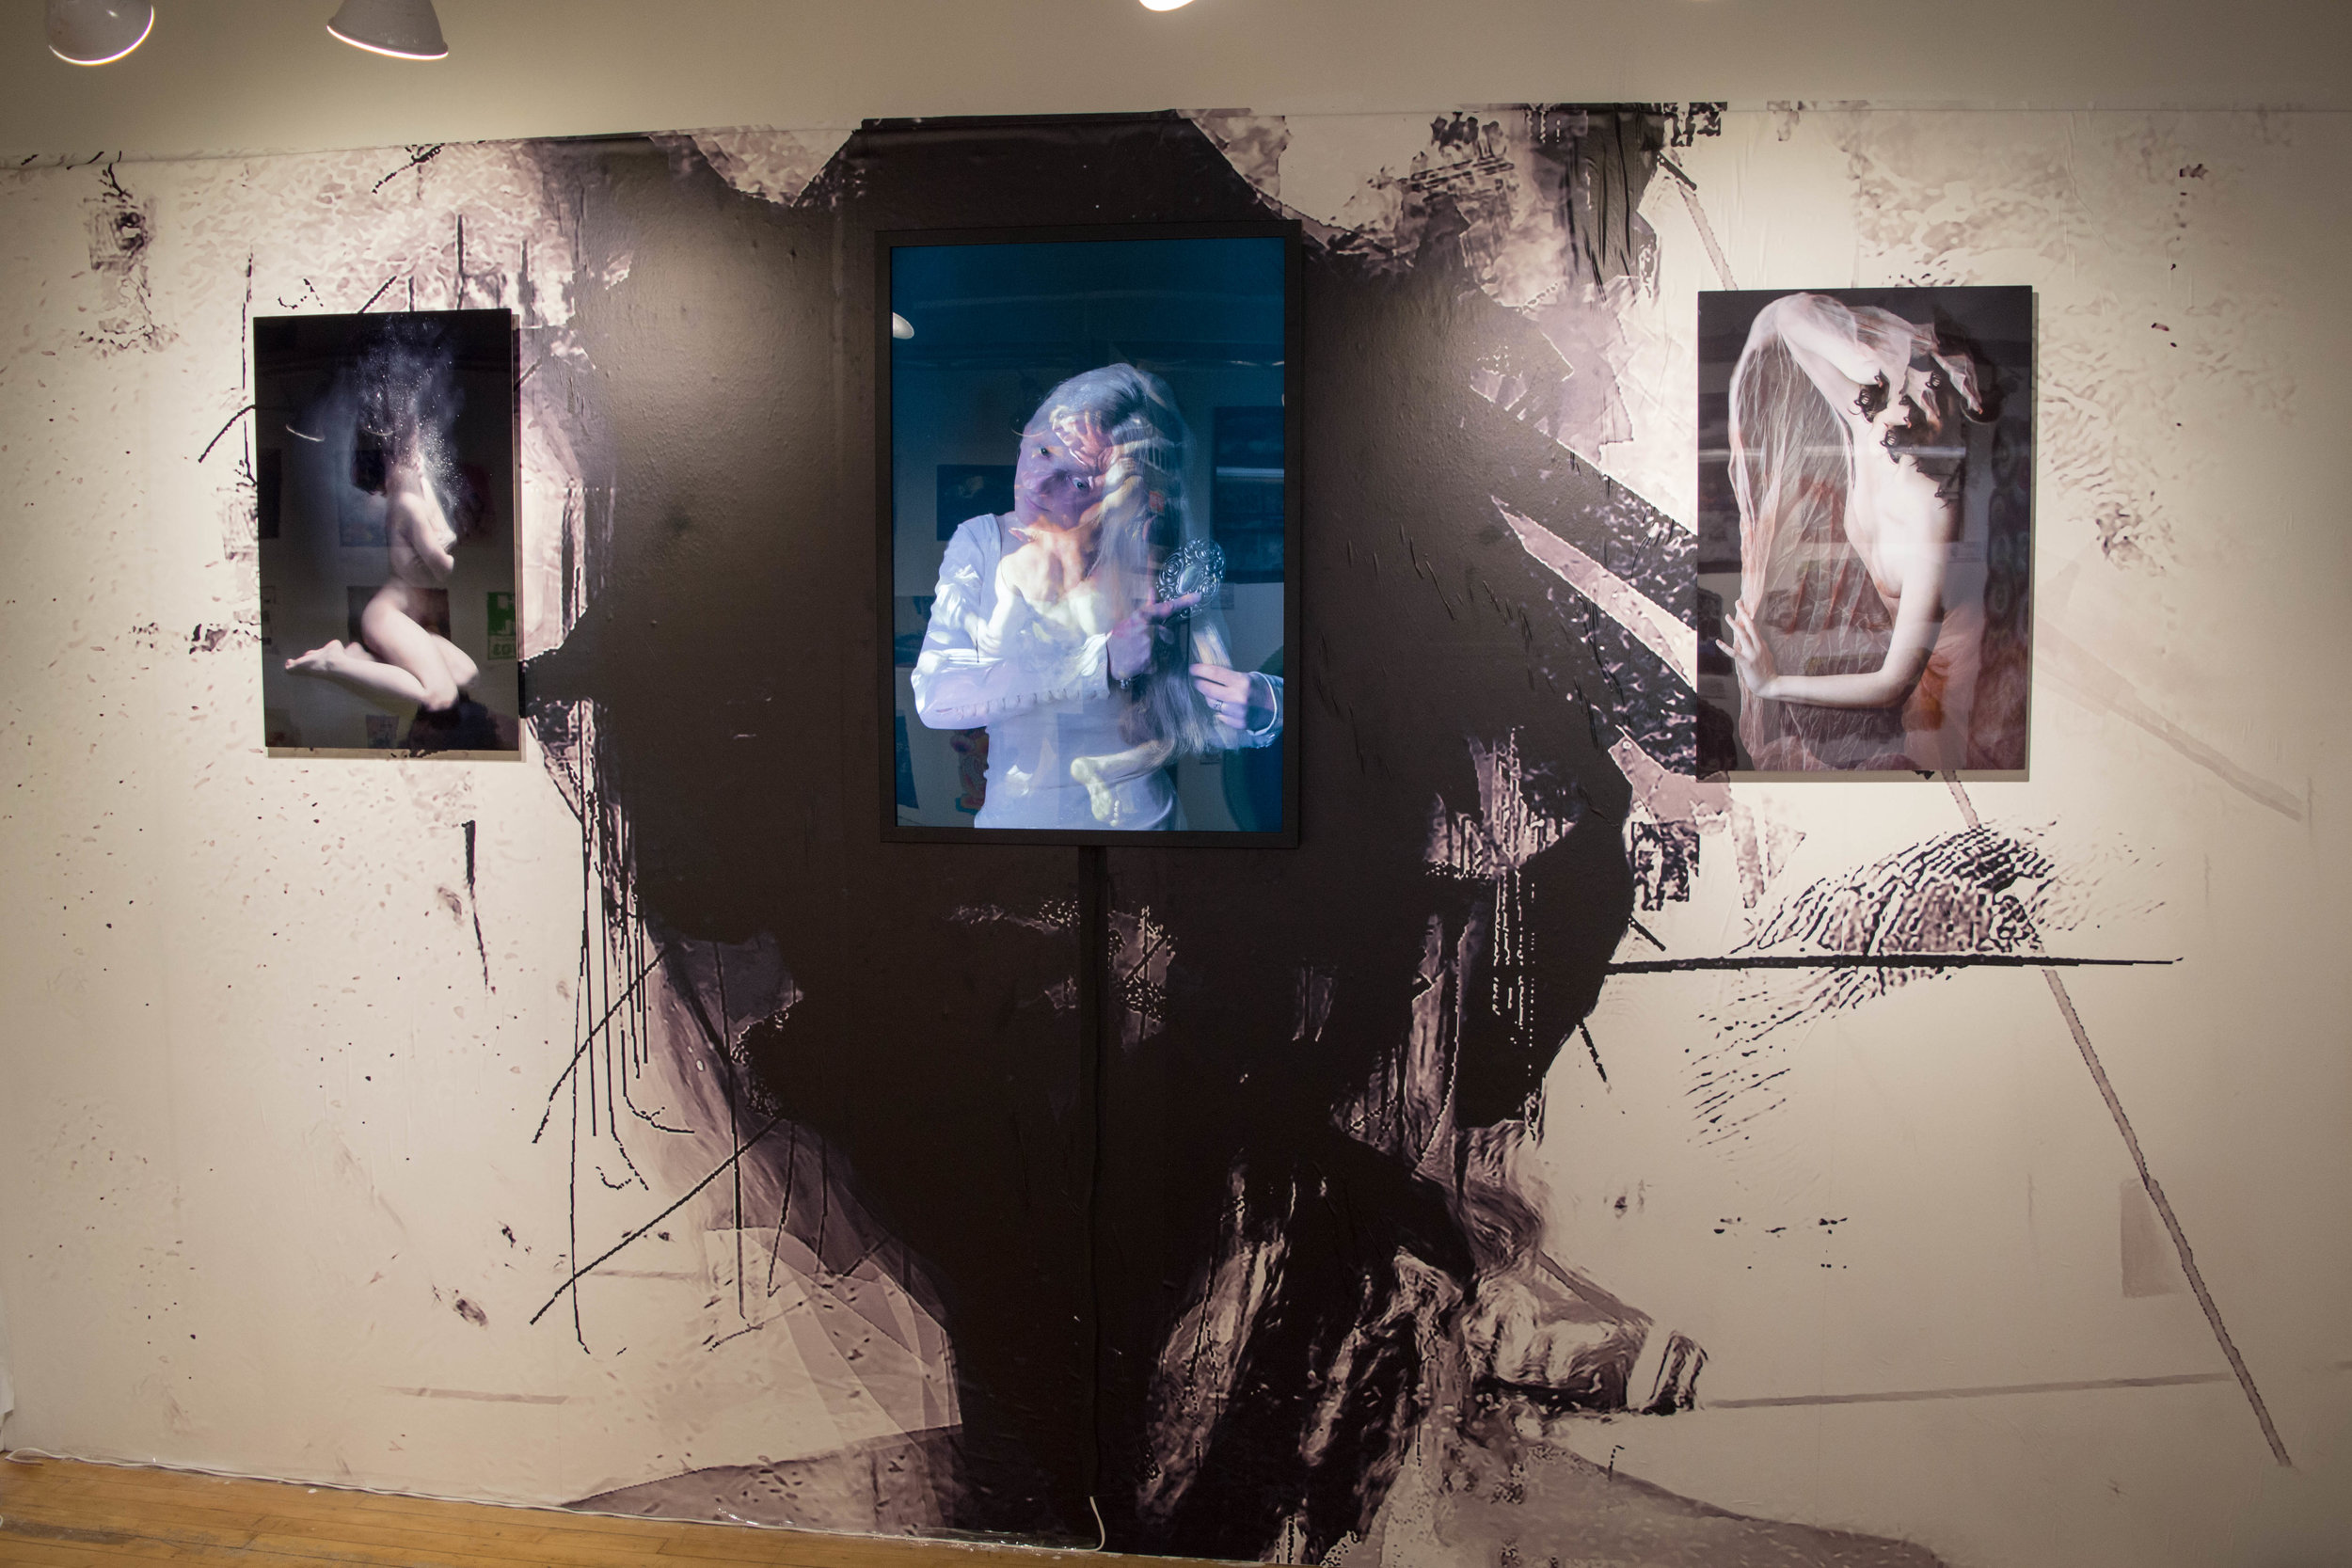 """From left to right: """"Ashes"""" Limited Edition Aluminium Print, """"The Weight of Silence"""" Lightbox and """"The Faceless Maiden"""" Limited Edition Aluminium Print. (Backdrop, """"Relapse"""")"""